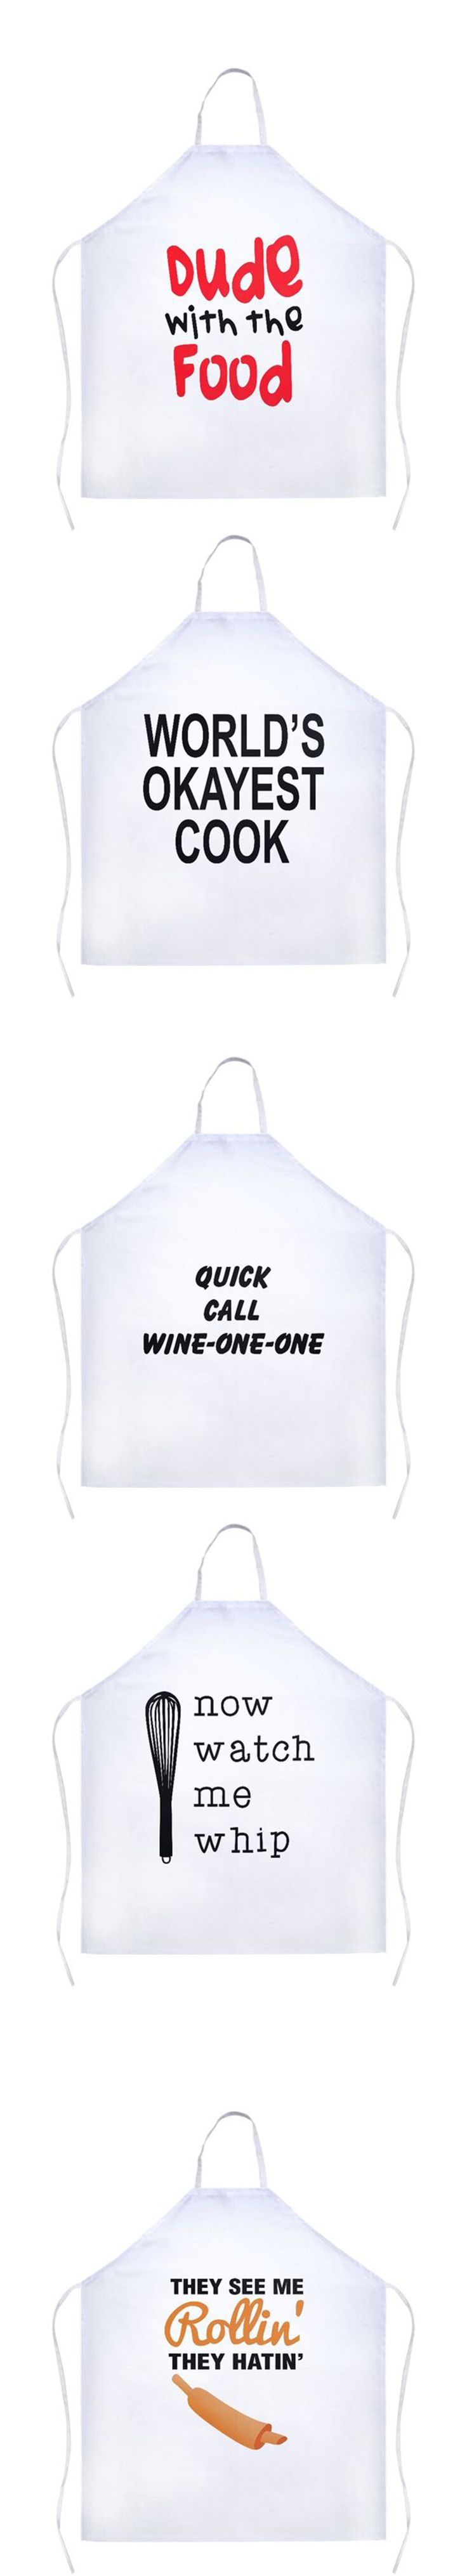 White apron big w - Sarcastic And Funny Aprons For Those Cooks Who Love A Good Laugh